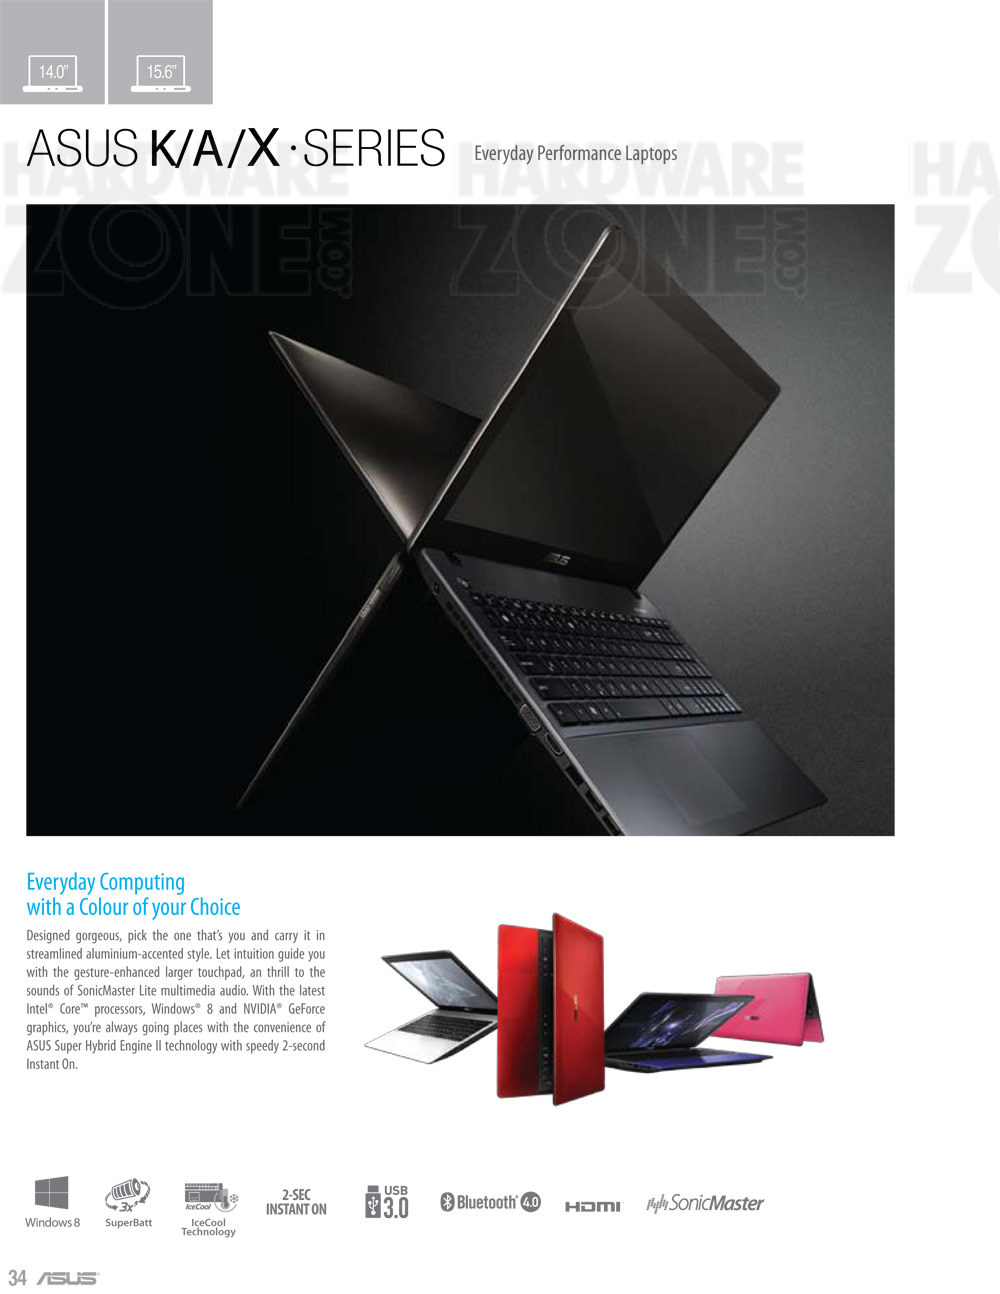 ASUS K/A/X-series notebooks - page 1